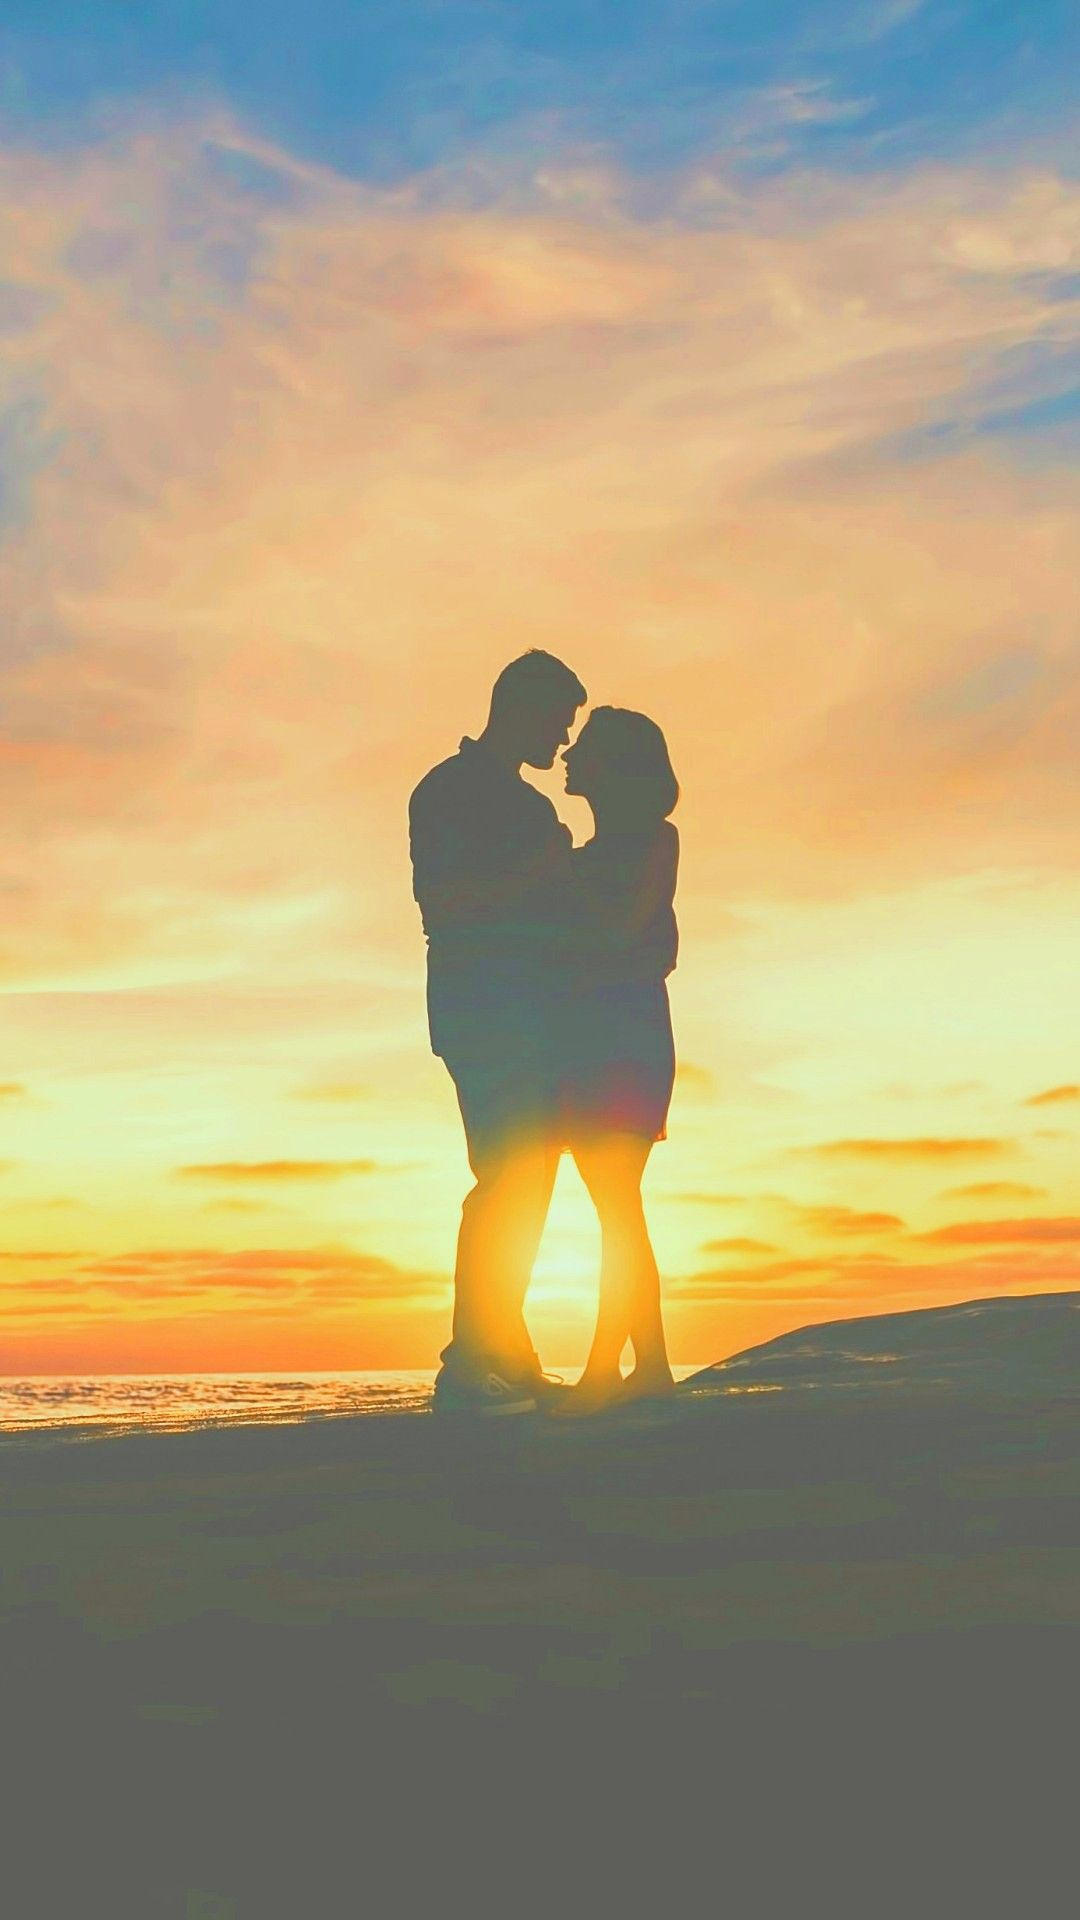 Couples In Sunset Love Hd Wallpapers 1080x1920 Wallpaper 1080x1920 Hd Wallpaper 1080x1920 Love Hd Wallpaper Hand shaped love wallpaper in sunset